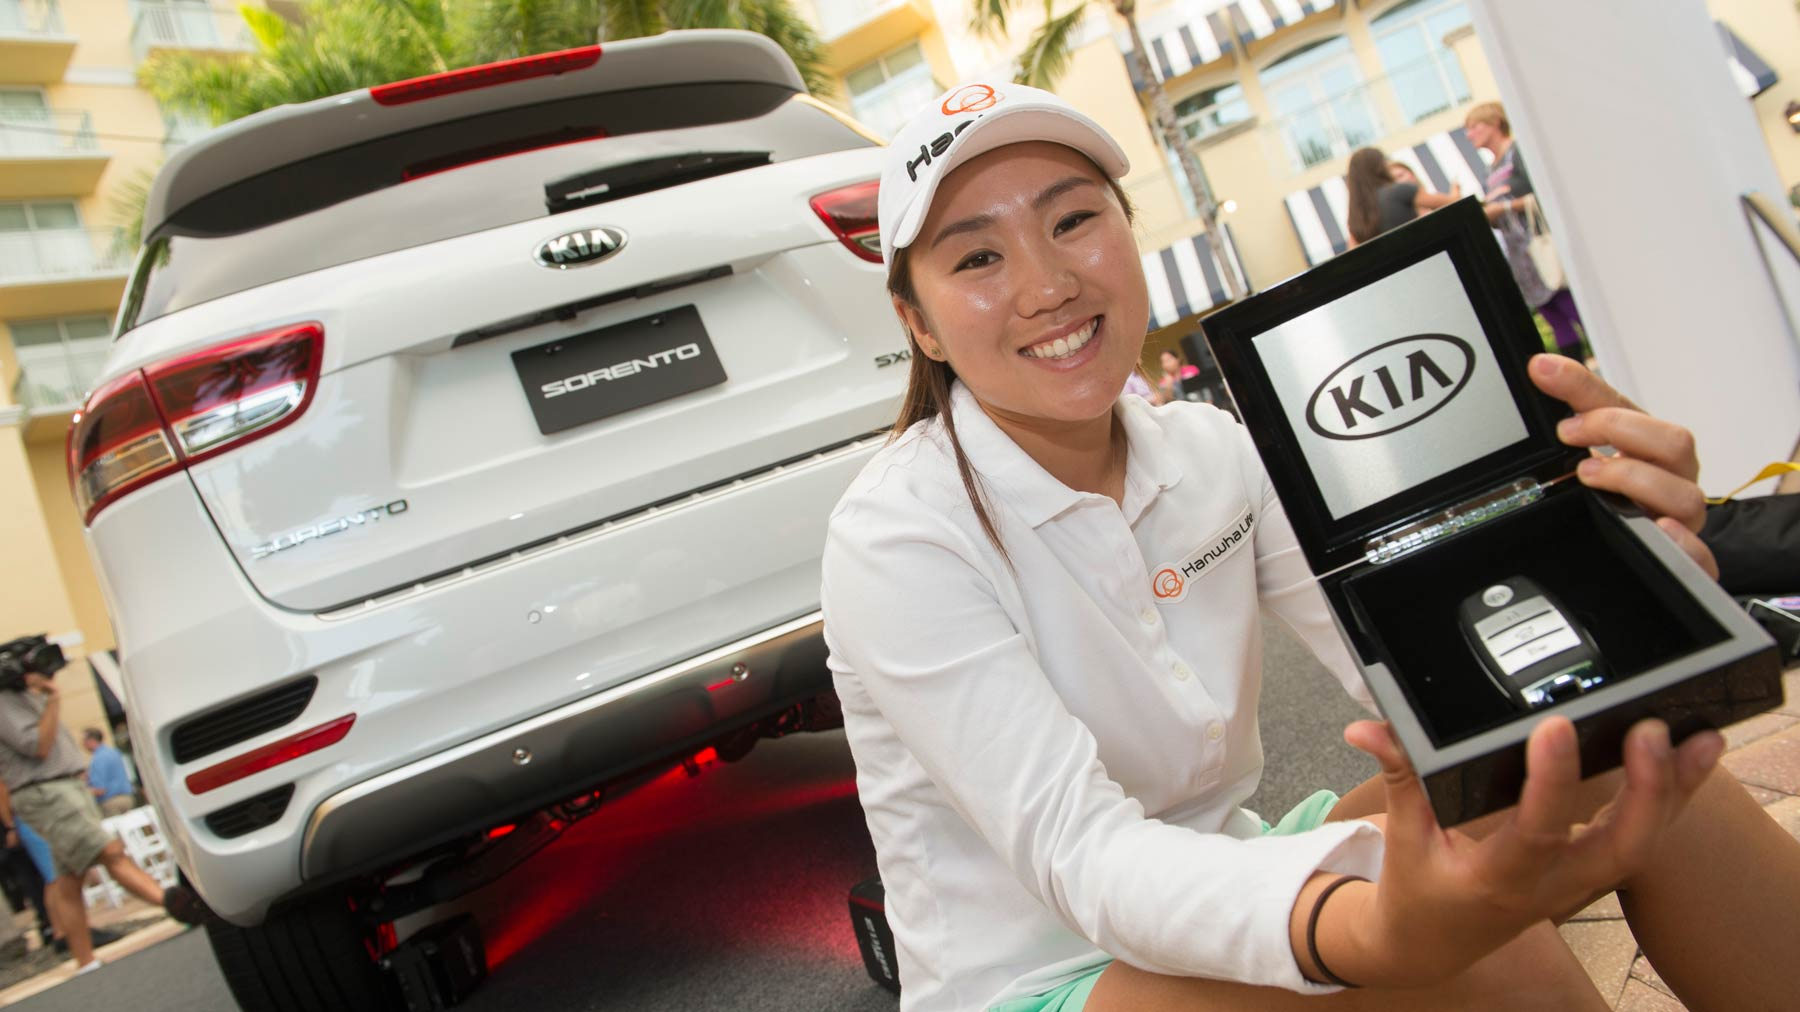 2015 Kia Community Assist Award Winner I.K. Kim with her new Kia Sorento